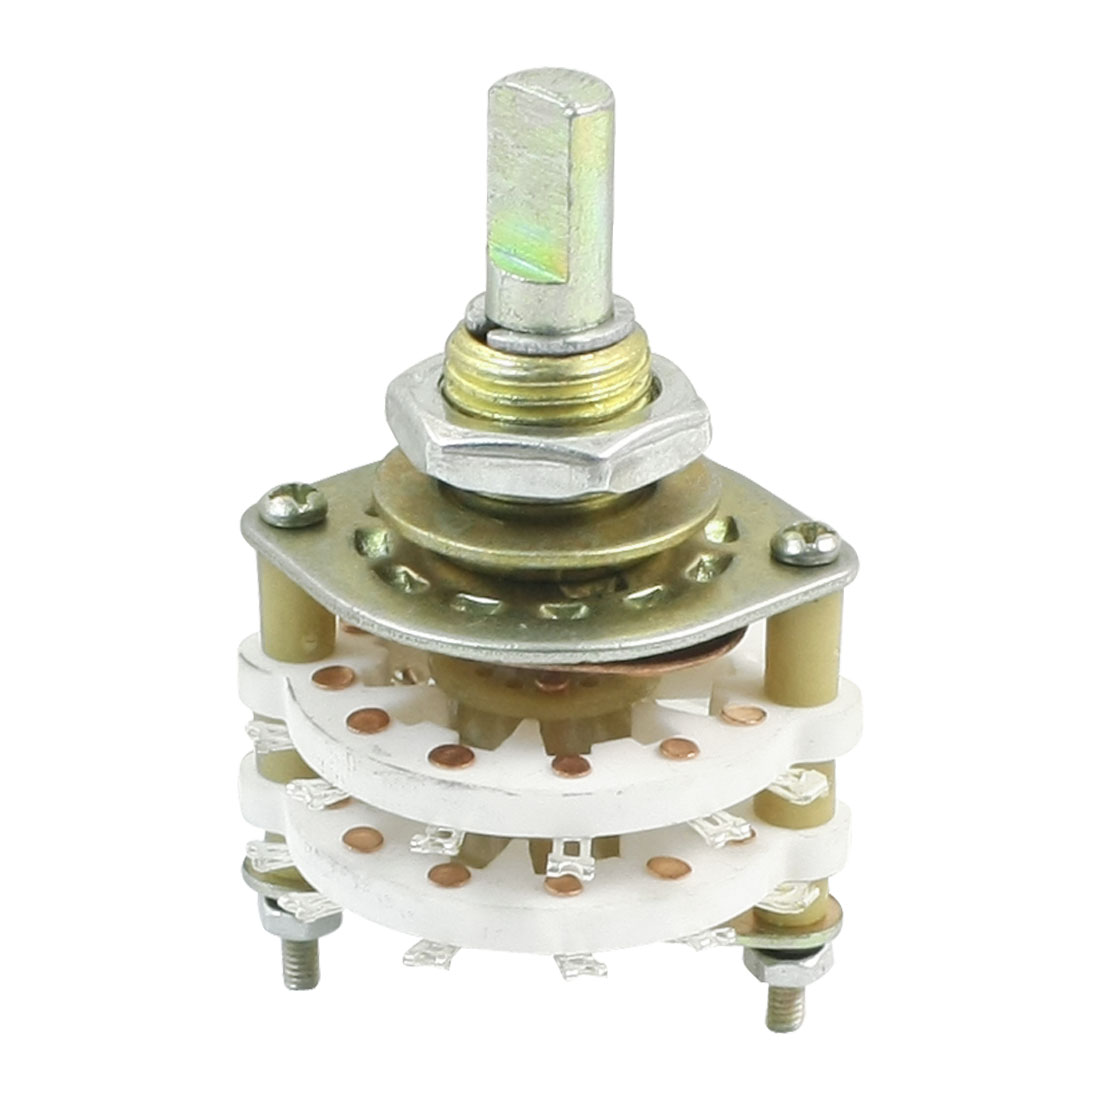 UXCELL Kcx2*6 10Mm Mounting Hole Dia 2P6t 2 Pole 5 Way Two Decks 14Pin Band Channael Rotary Switch Selector 4pcs band channael rotary switch 2p3p 2 pole 3 position single deck